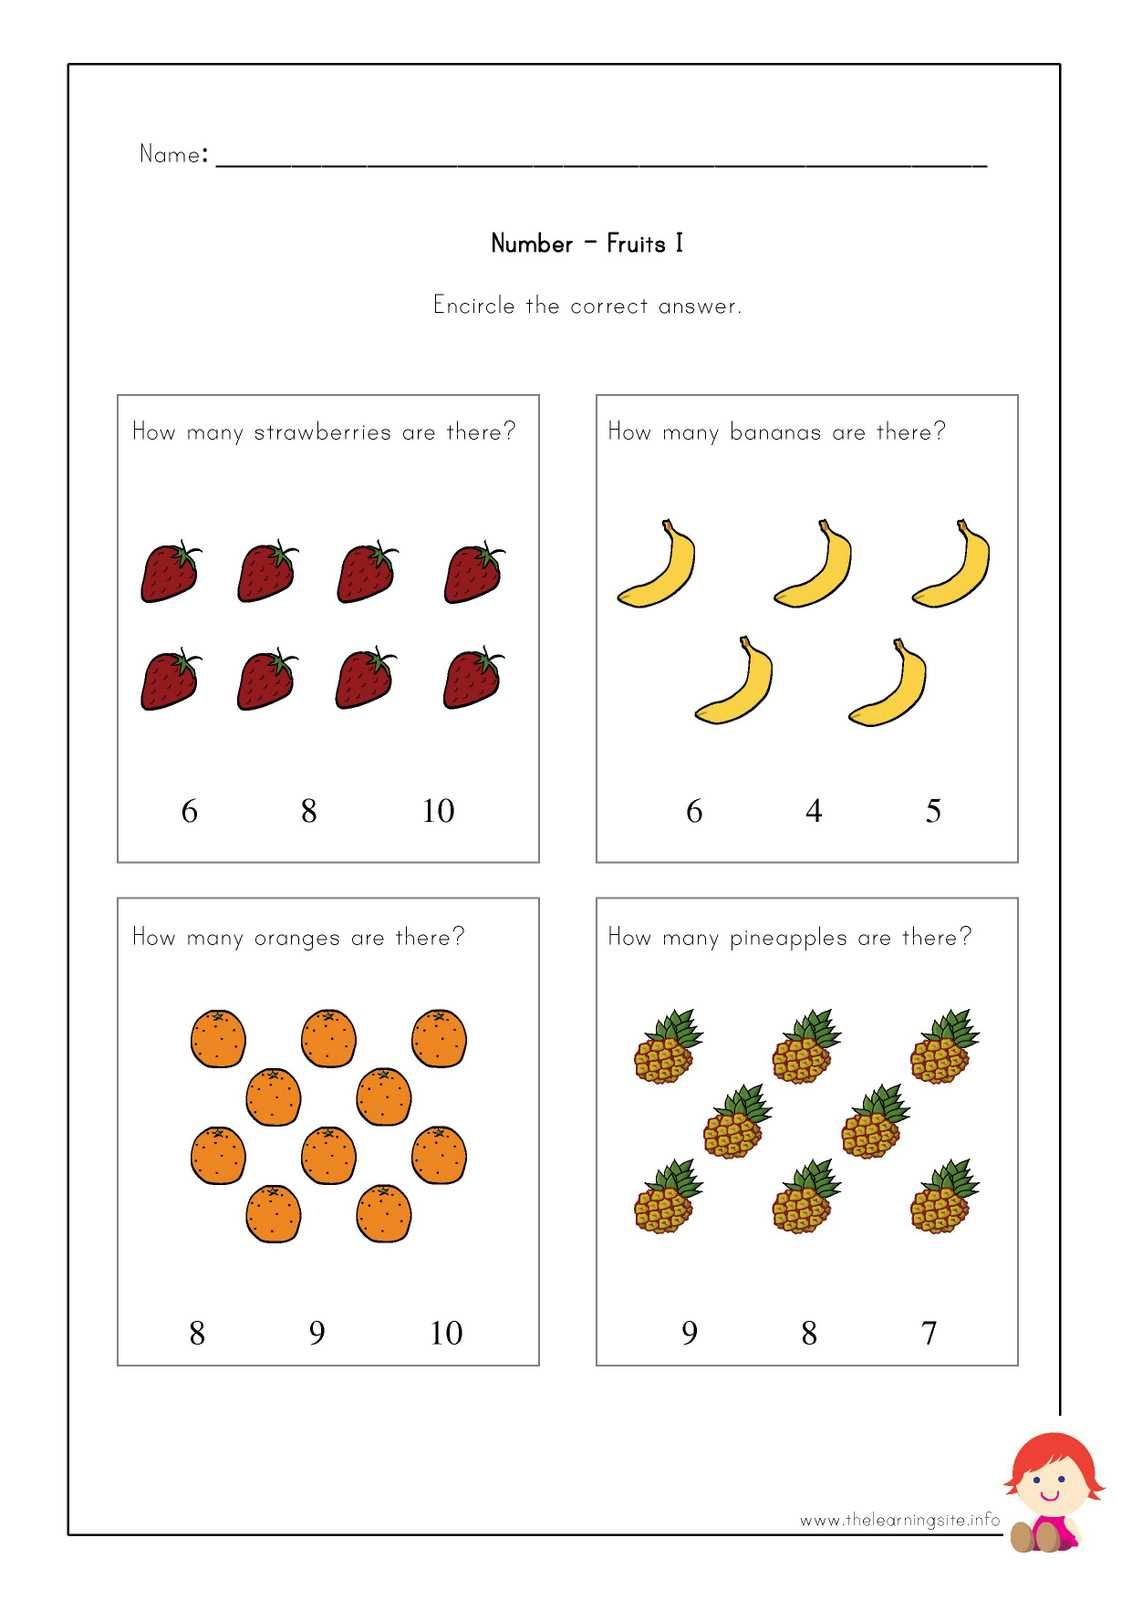 Workbooks landform matching worksheets : learning numbers worksheets | worksheet 1 worksheet 2 worksheet 3 ...